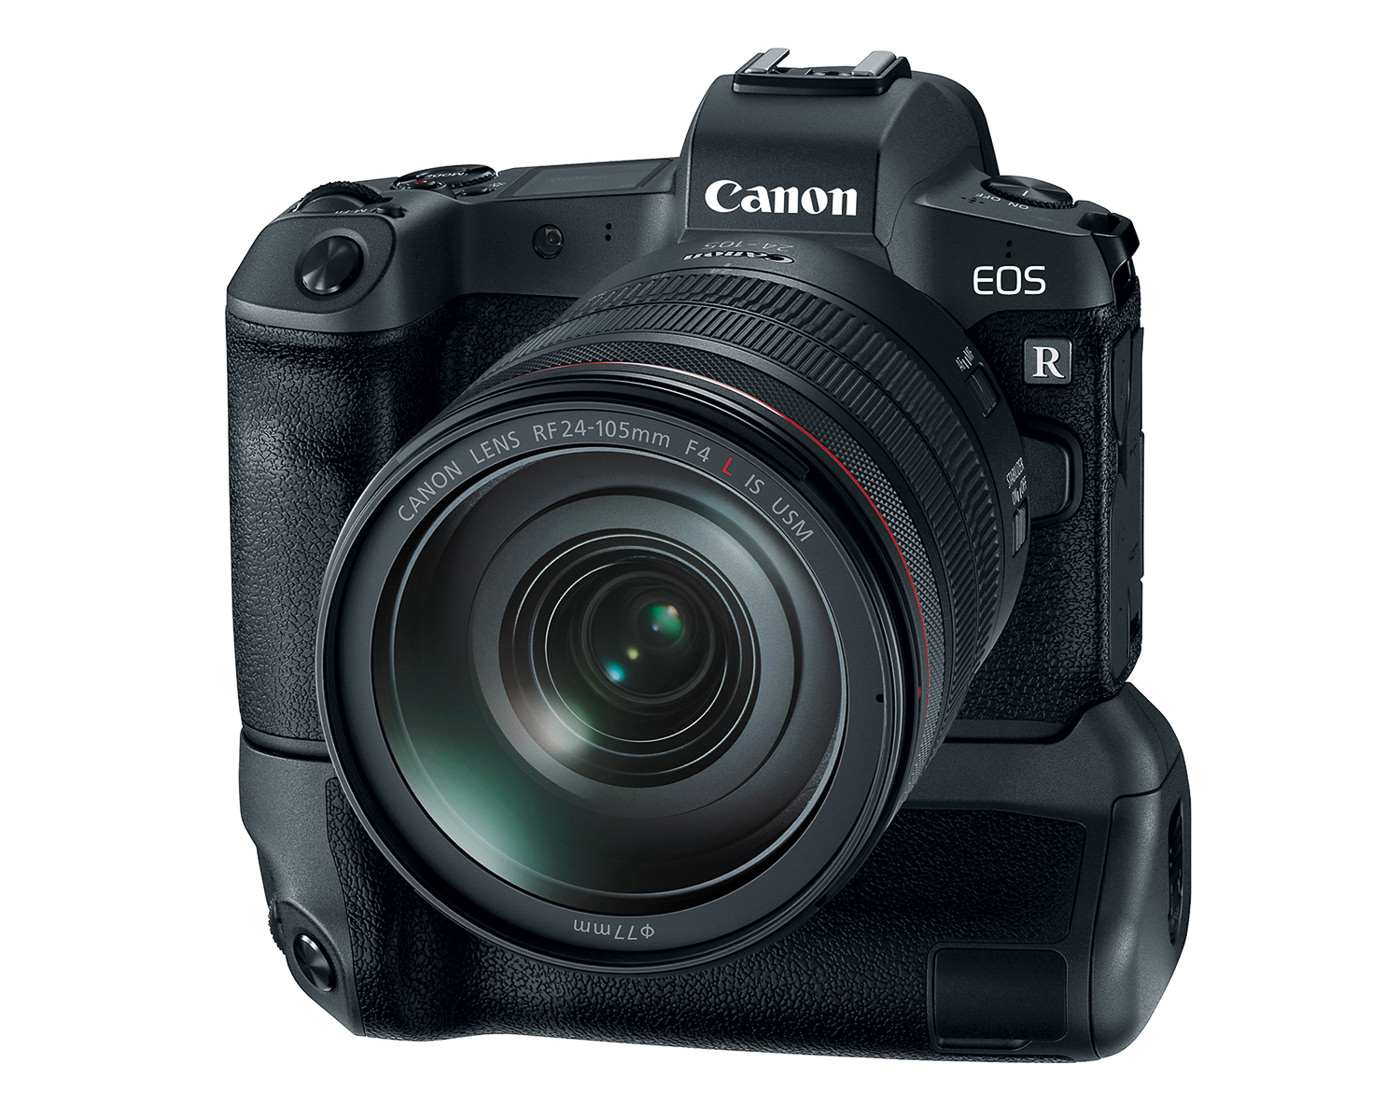 Canon EOS R front view with 24-105 f4 lens and battery grip